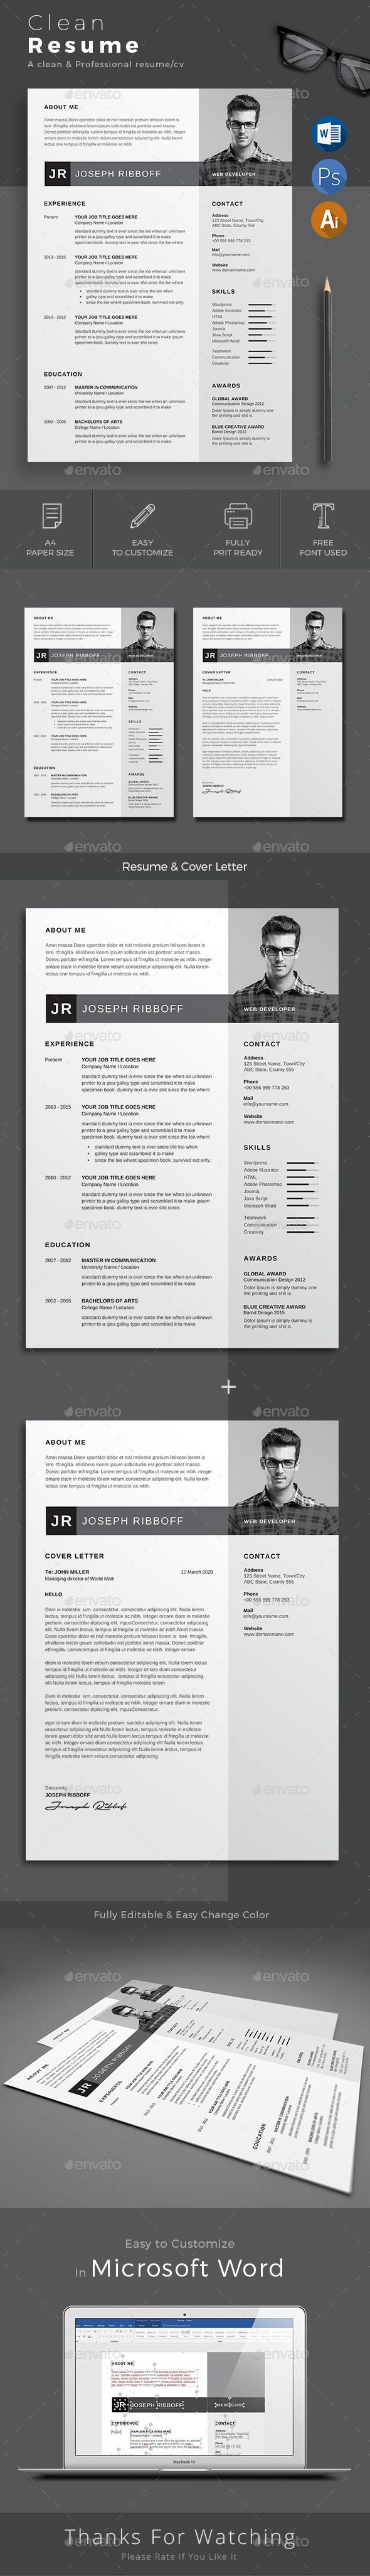 Best 25+ Indesign resume template ideas on Pinterest | Creative cv ...